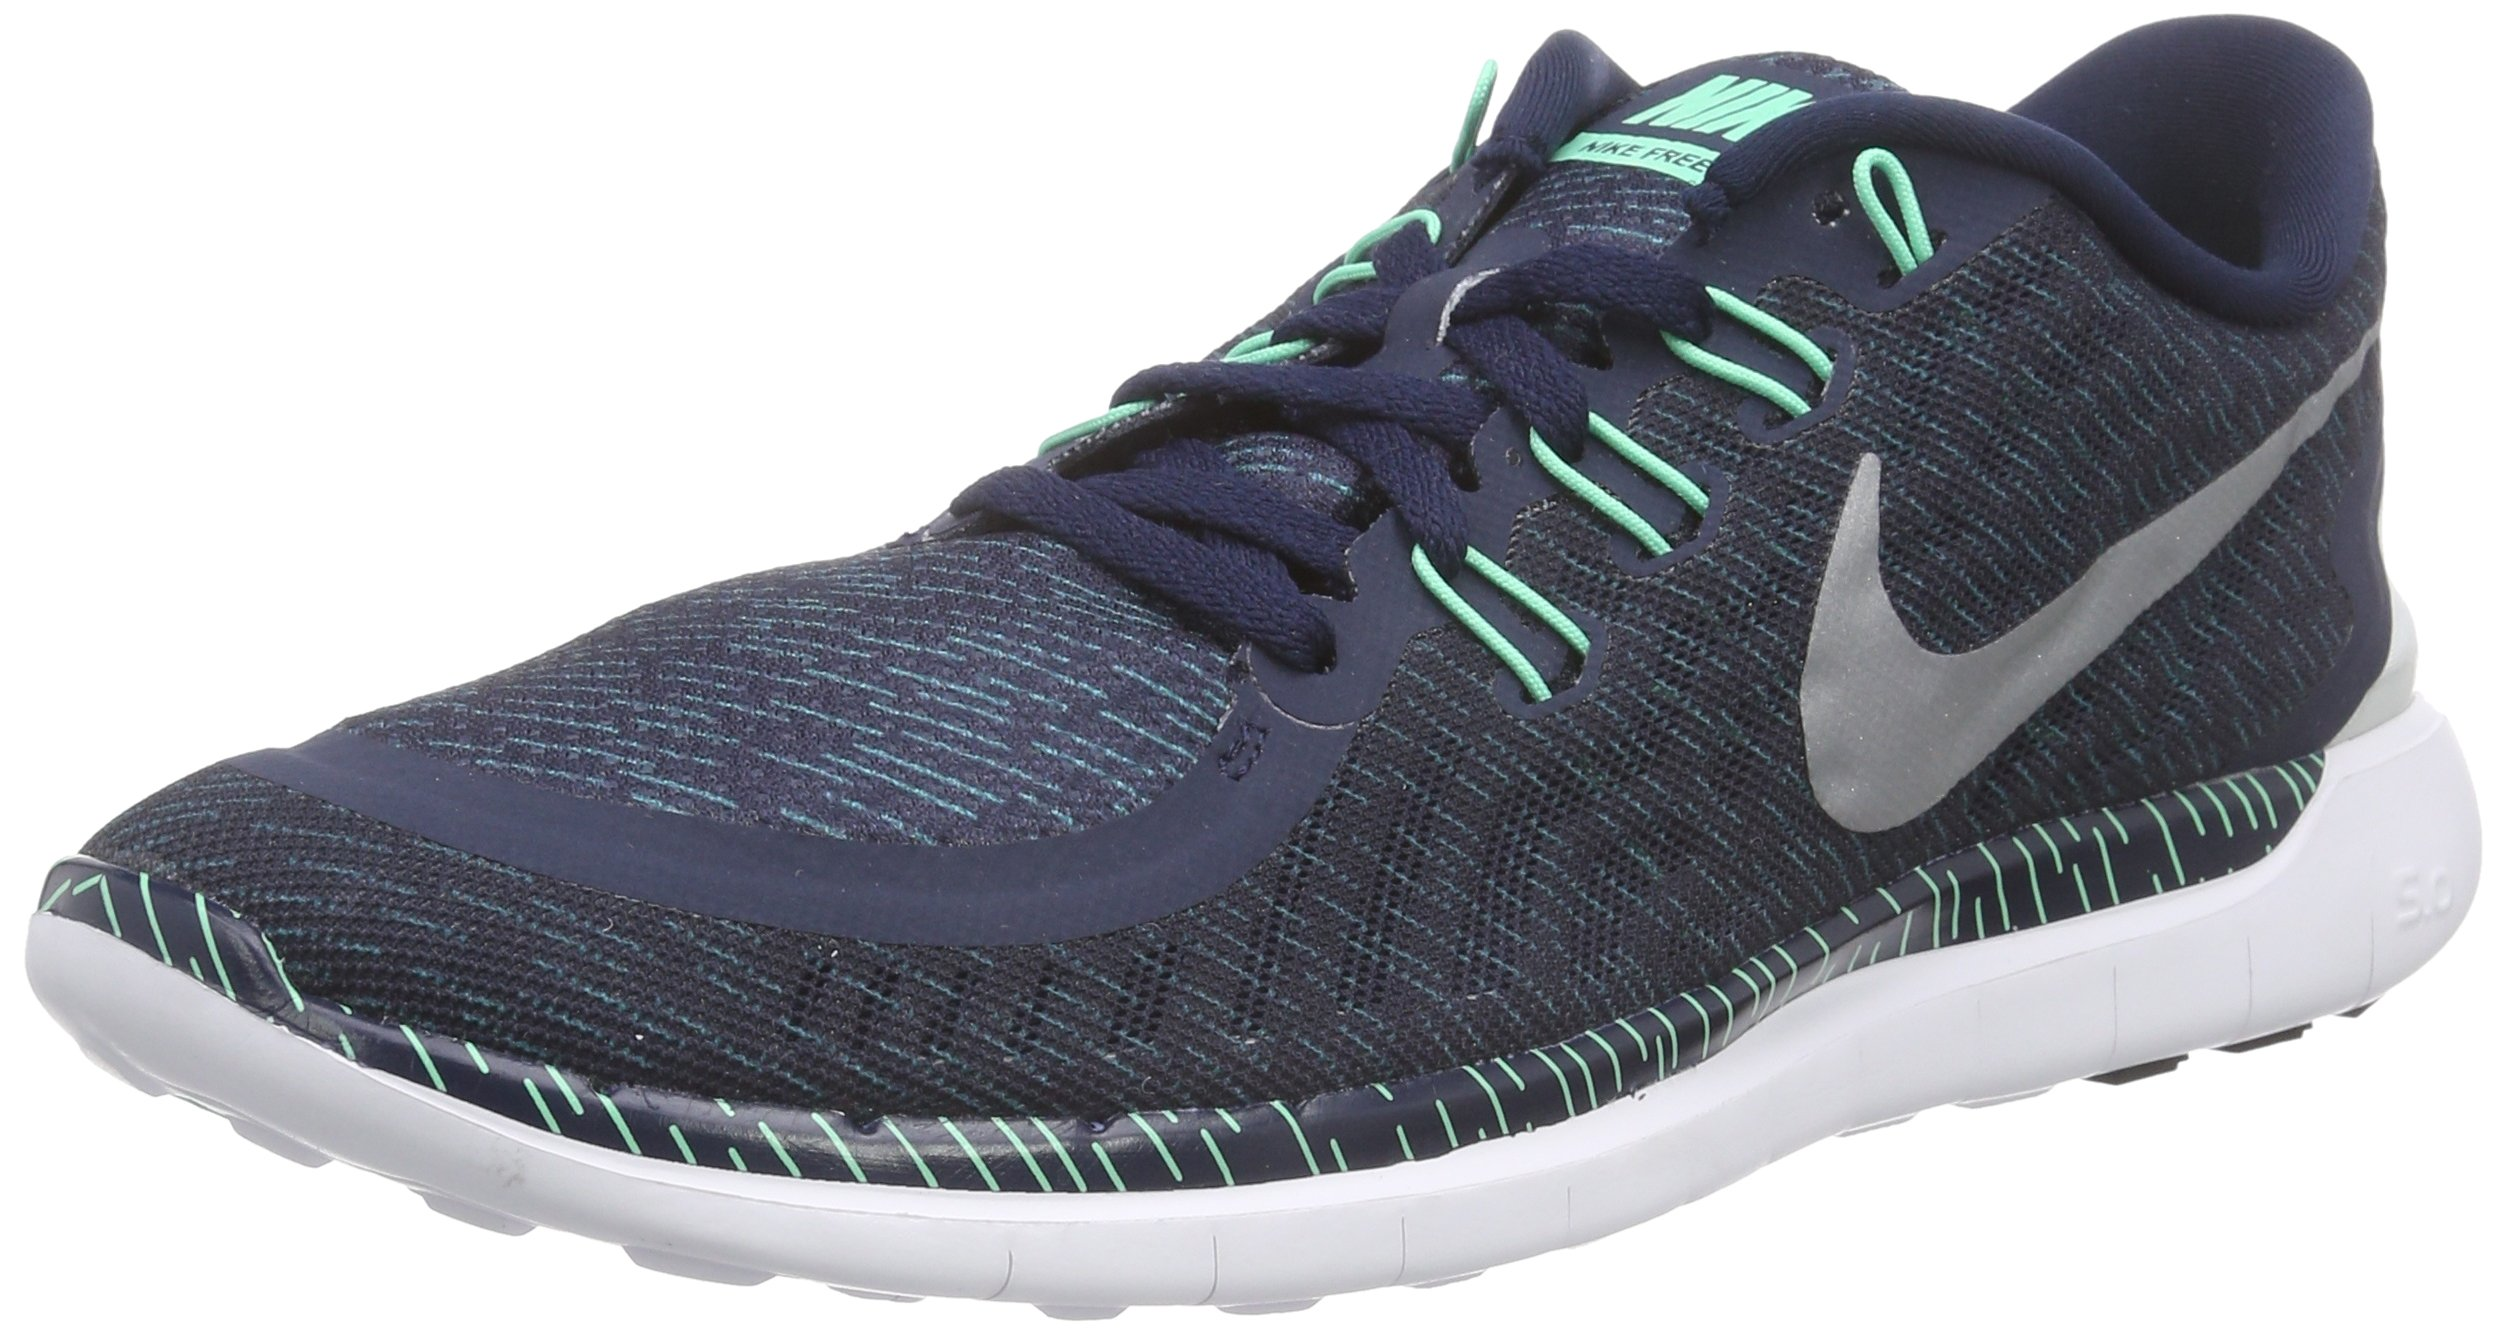 82182dd01ed32 Galleon - Nike Men s Free 5.0 Print Obsdn Rflct Slvr Grn Glw Blk Running  Shoe 10 Men US